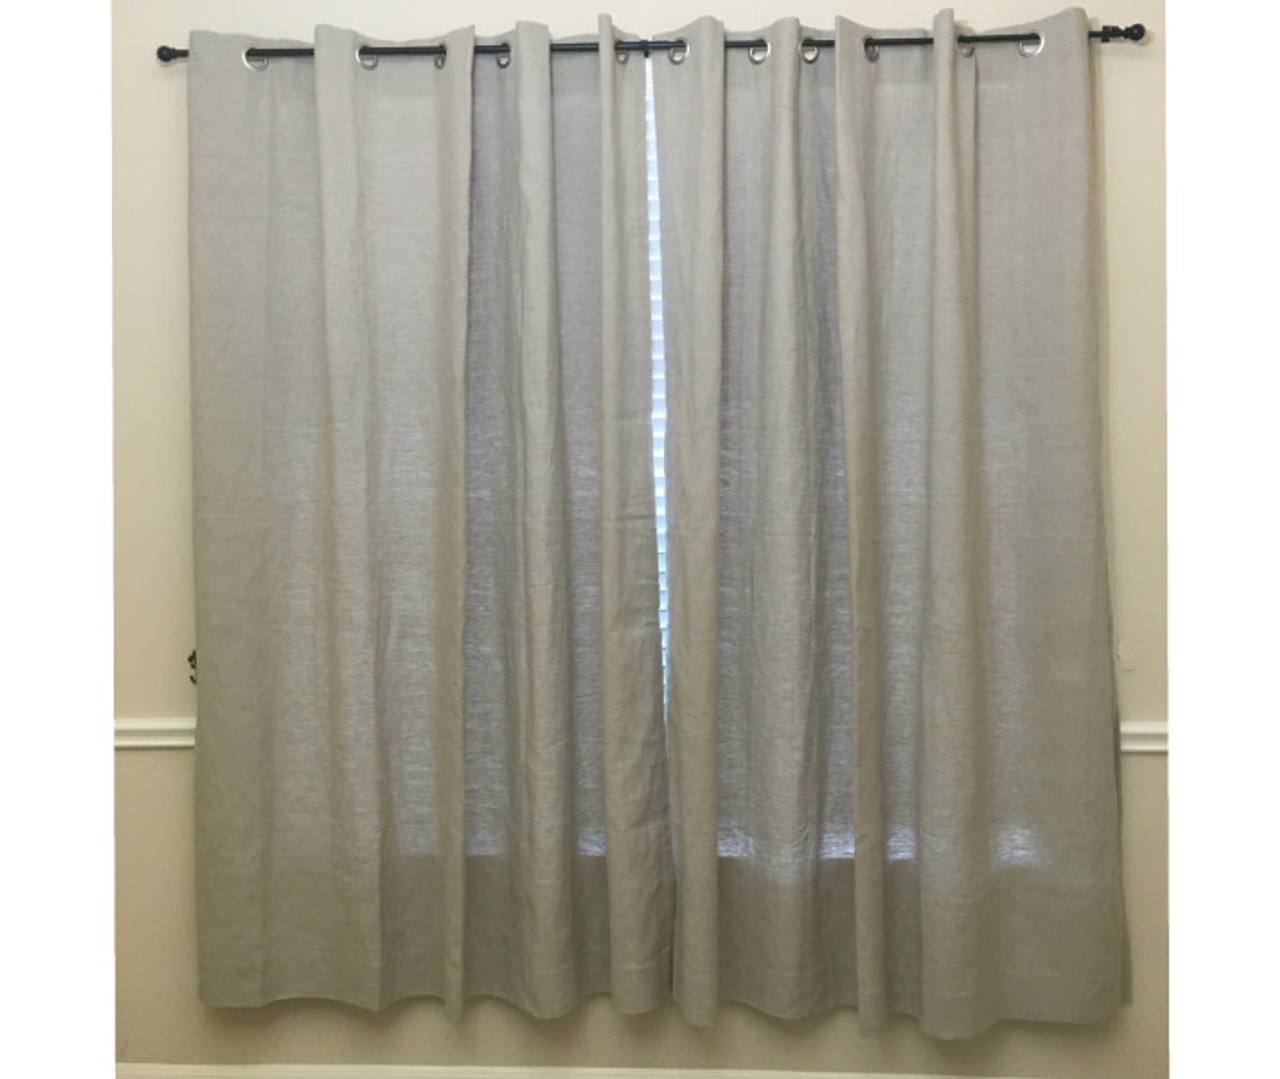 hero curtain web teal panel linen hei curtains wid product